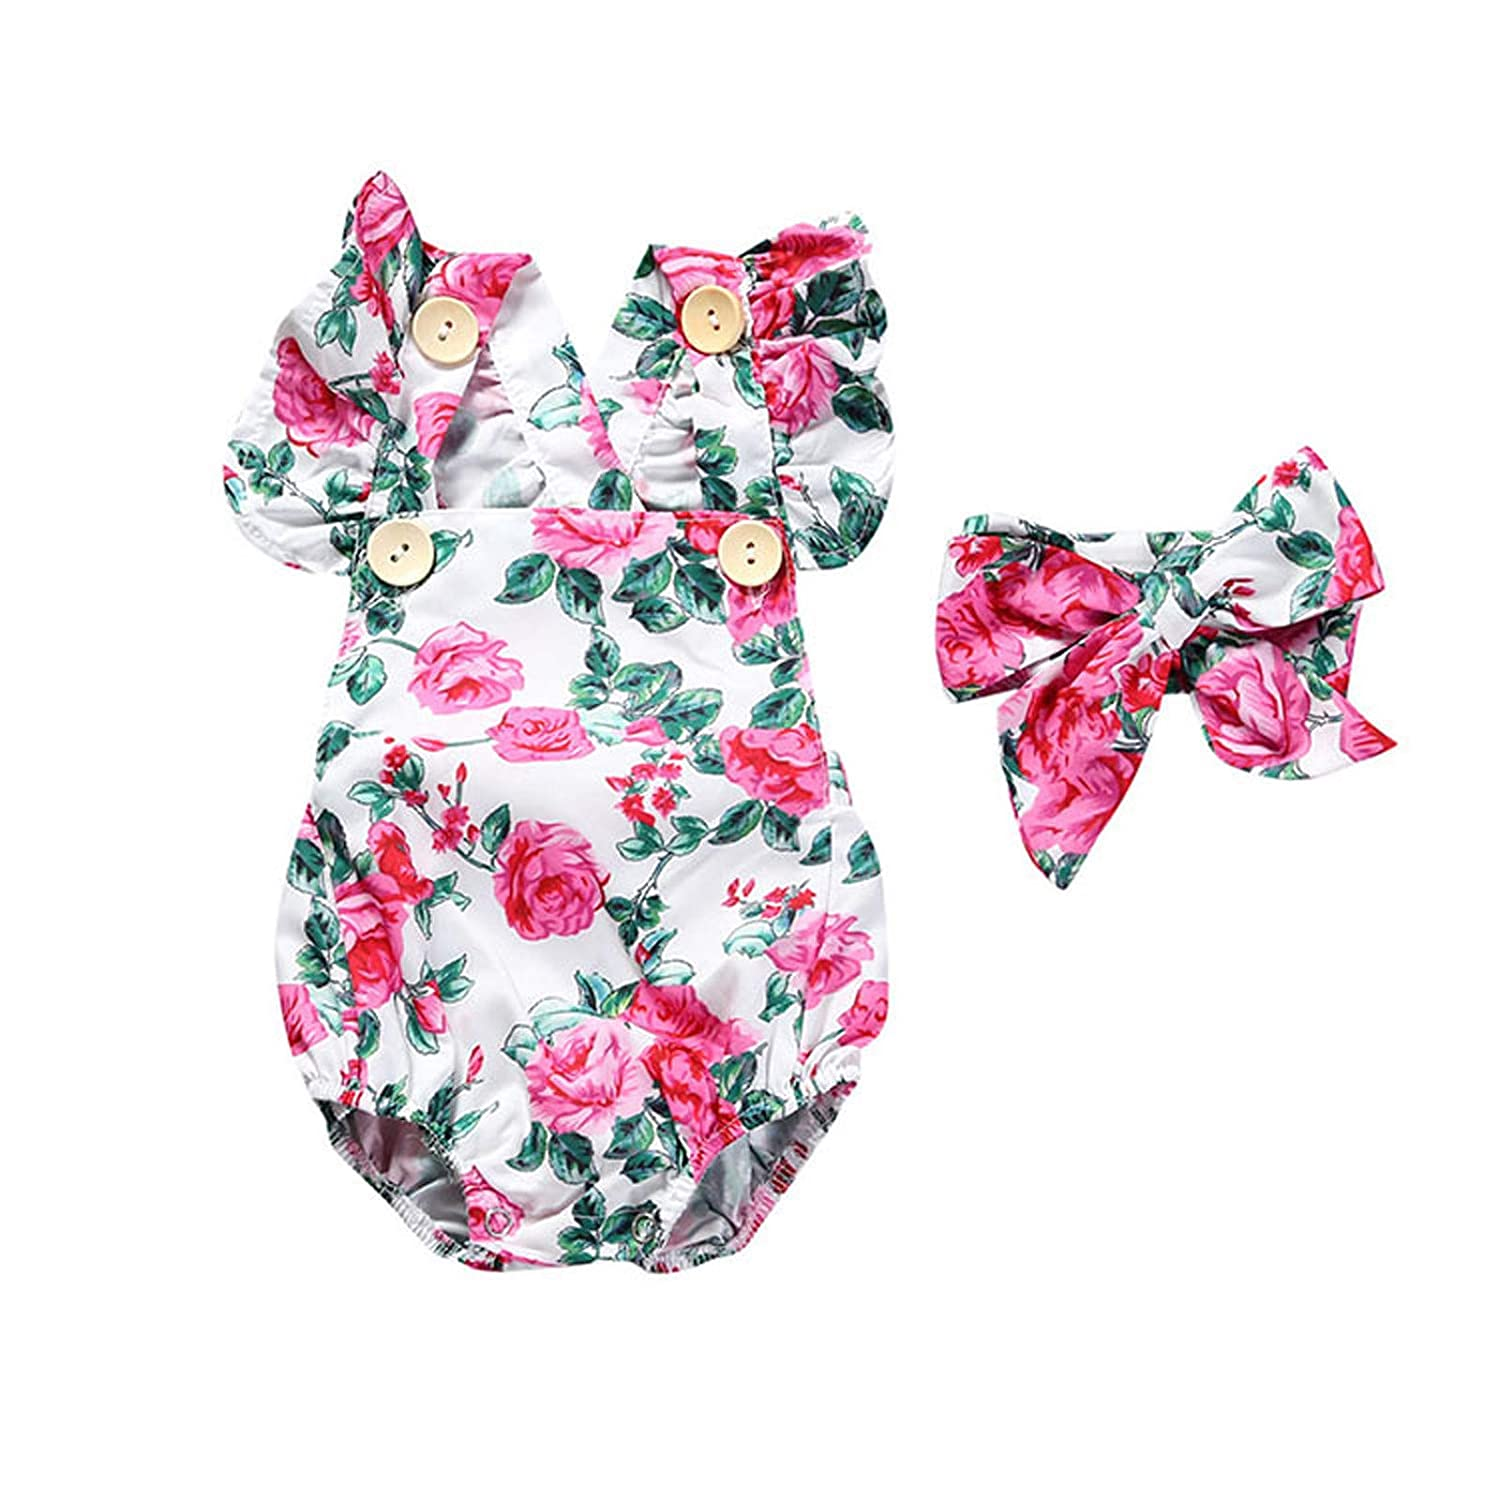 Newborn Kids Baby Girls Front Suit Romper Button Jumpsuit Floral Free Soldering shipping New